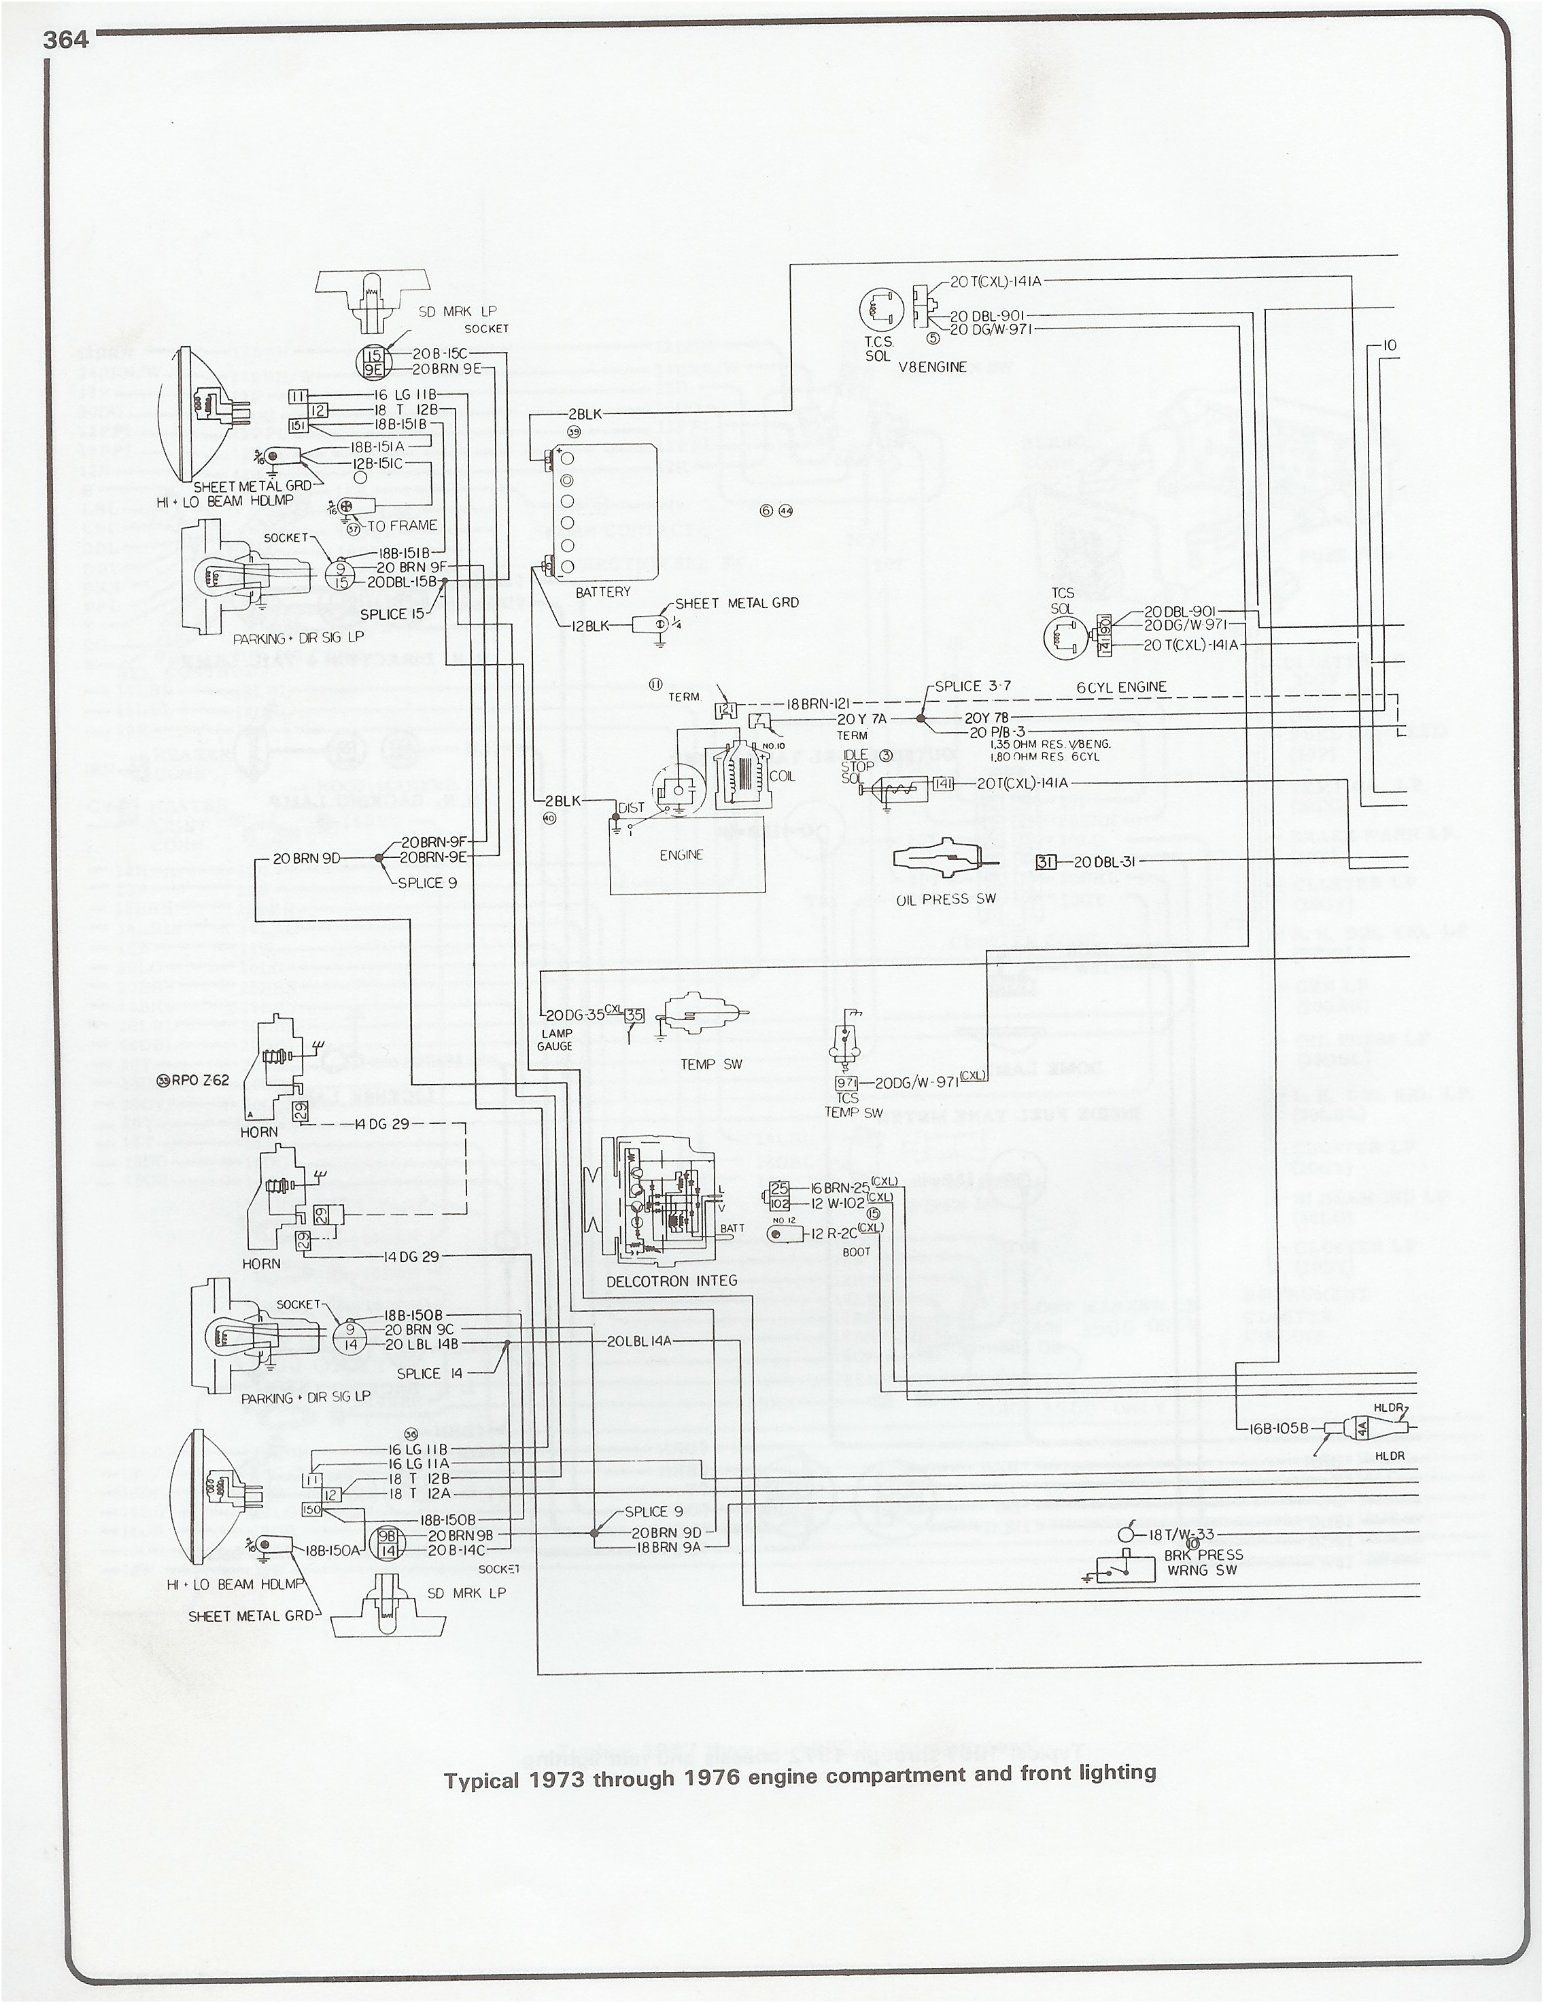 wiring diagram 1973 1976 chevy pickup chevy wiring diagram rh pinterest com 1976 chevy alternator wiring diagram 1976 chevrolet truck wiring diagram